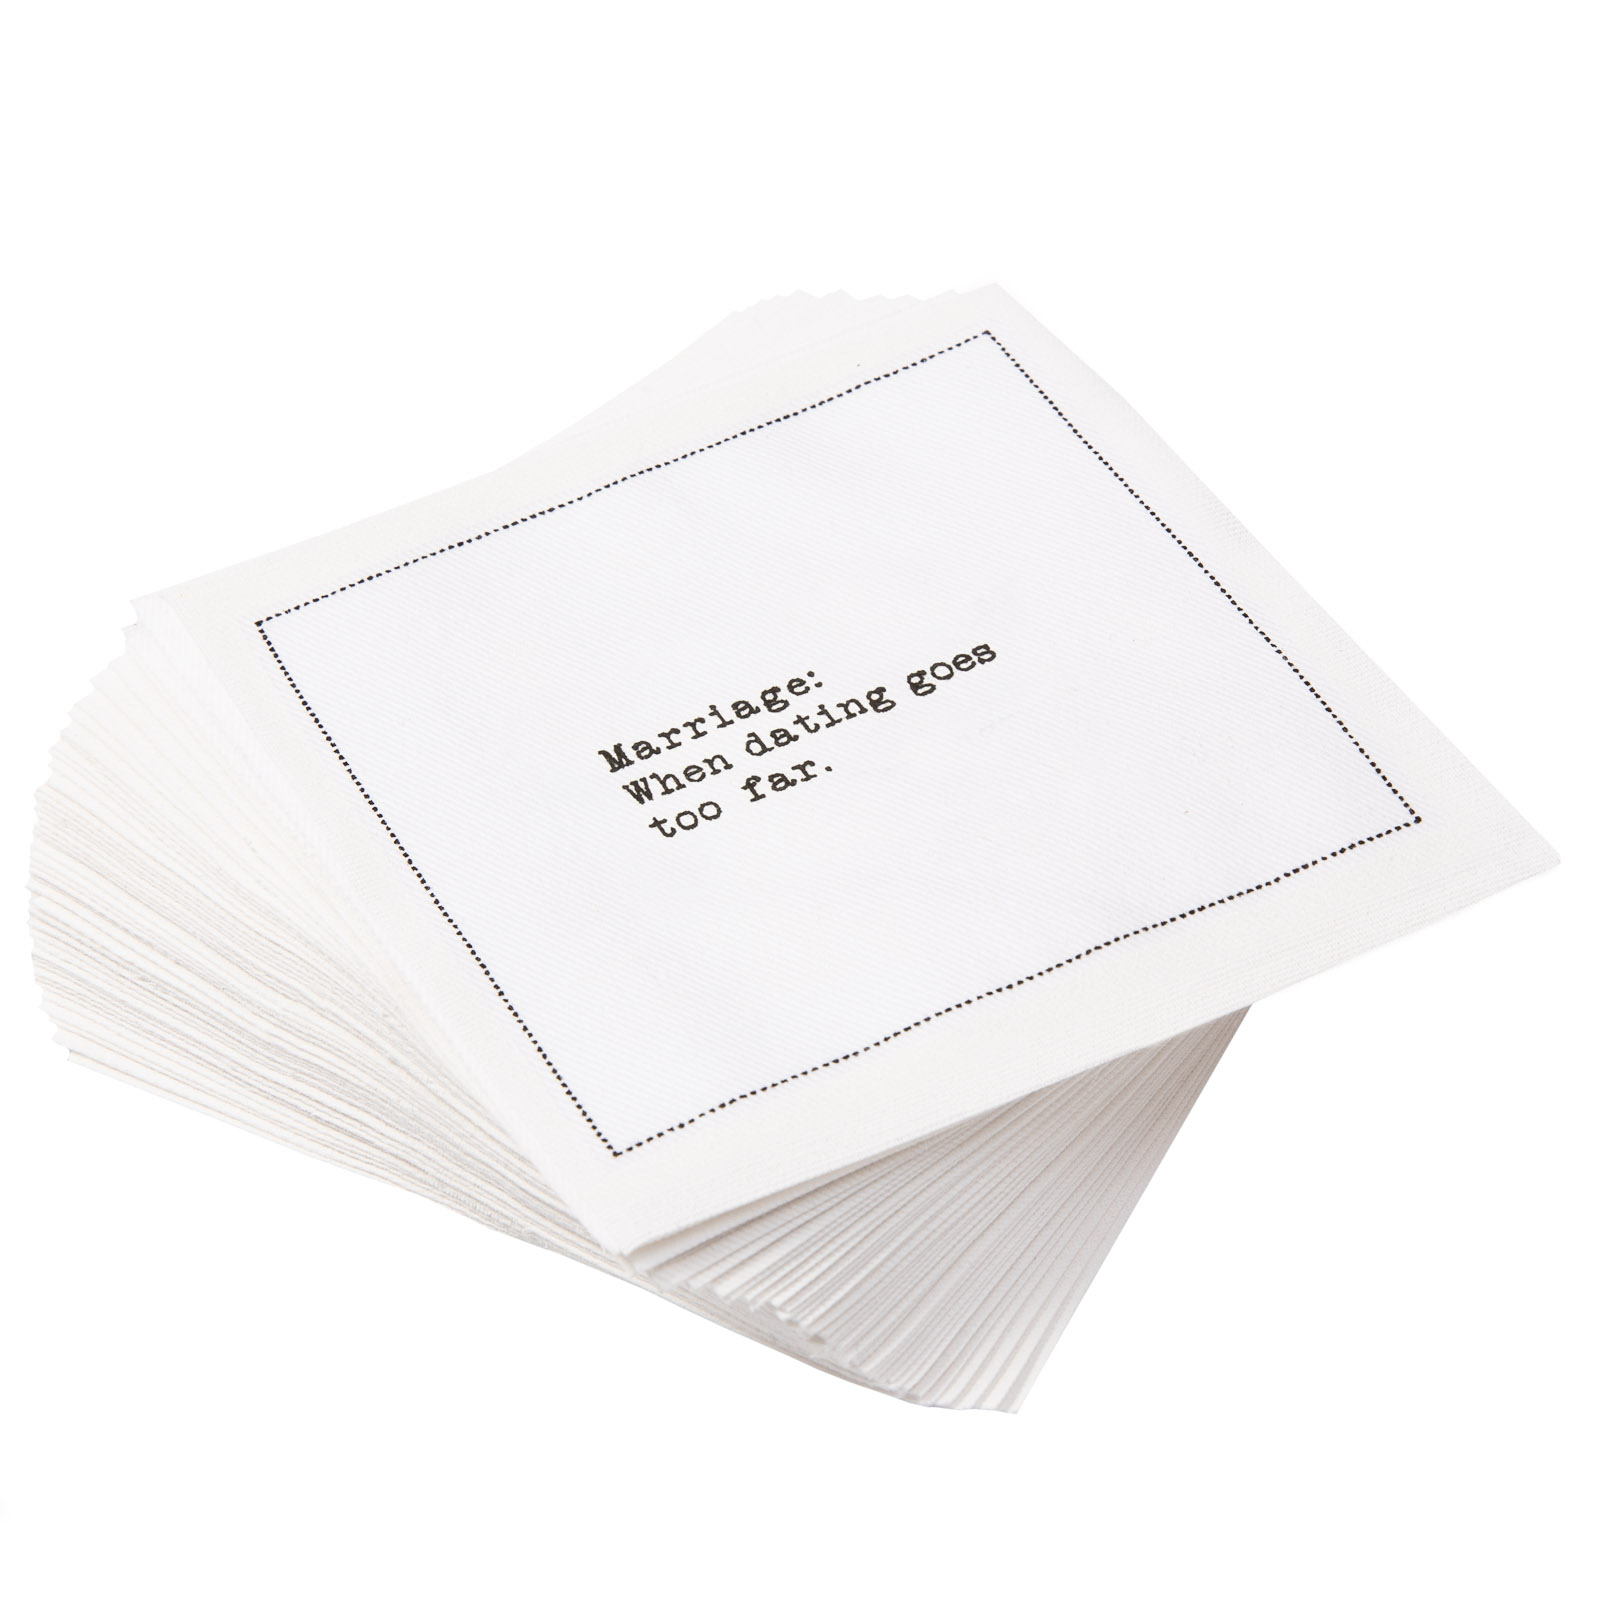 """White Cotton Cocktail with Marriage Quotes - 4.5"""" x 4.5"""" - 1200 units - 50 units per pack"""